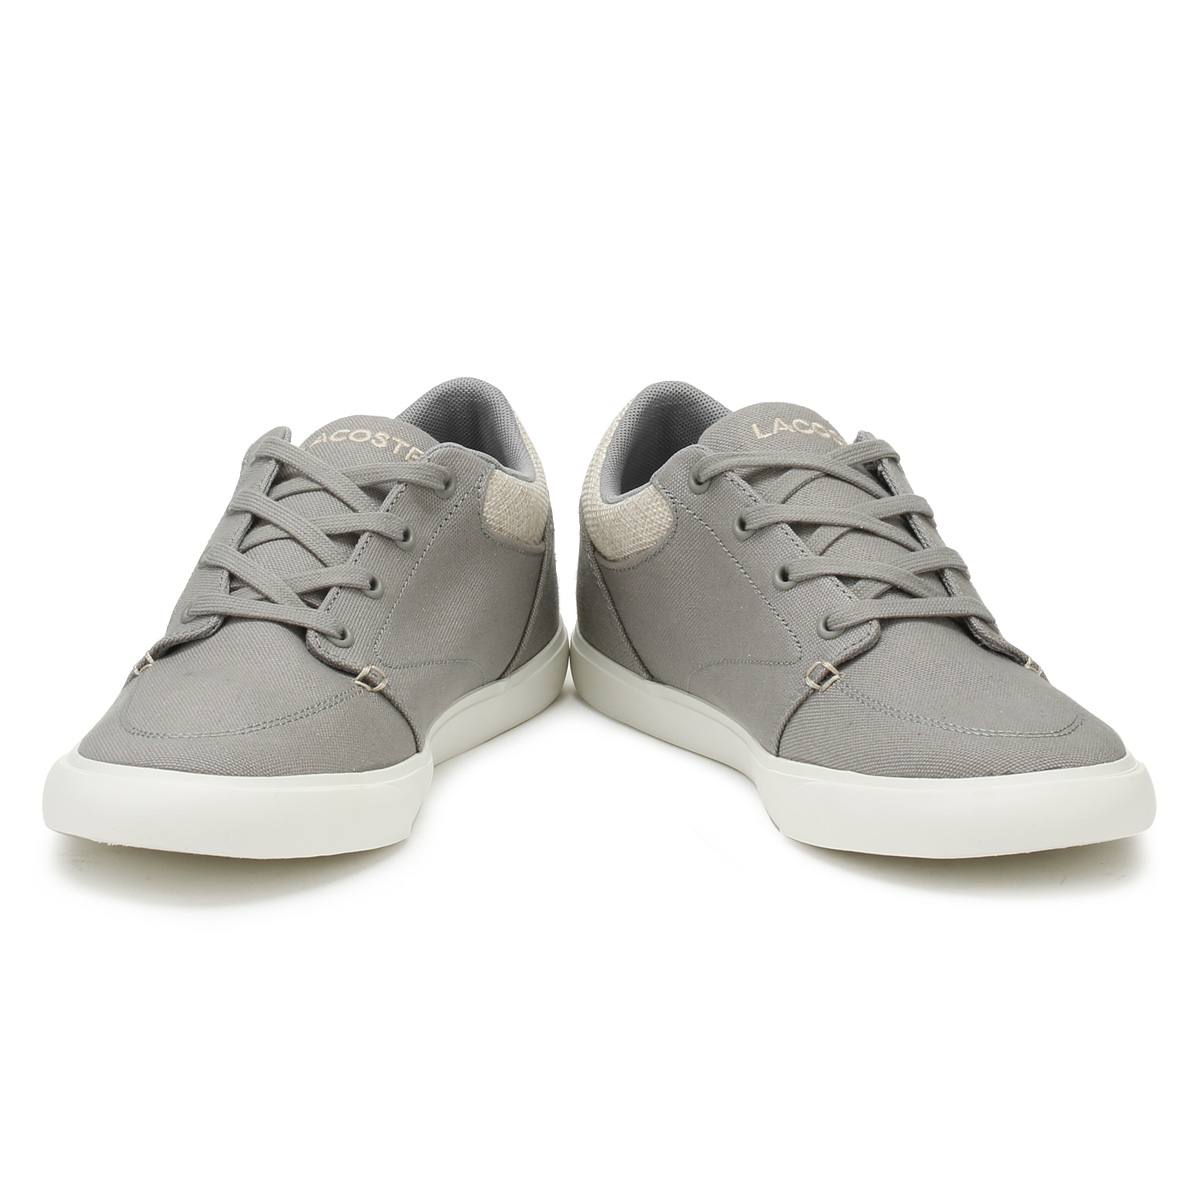 Lacoste &  Uomo Trainers Grau & Lacoste Natural Bayliss 218 2 Sport Casual Lace Up Schuhes ad84eb